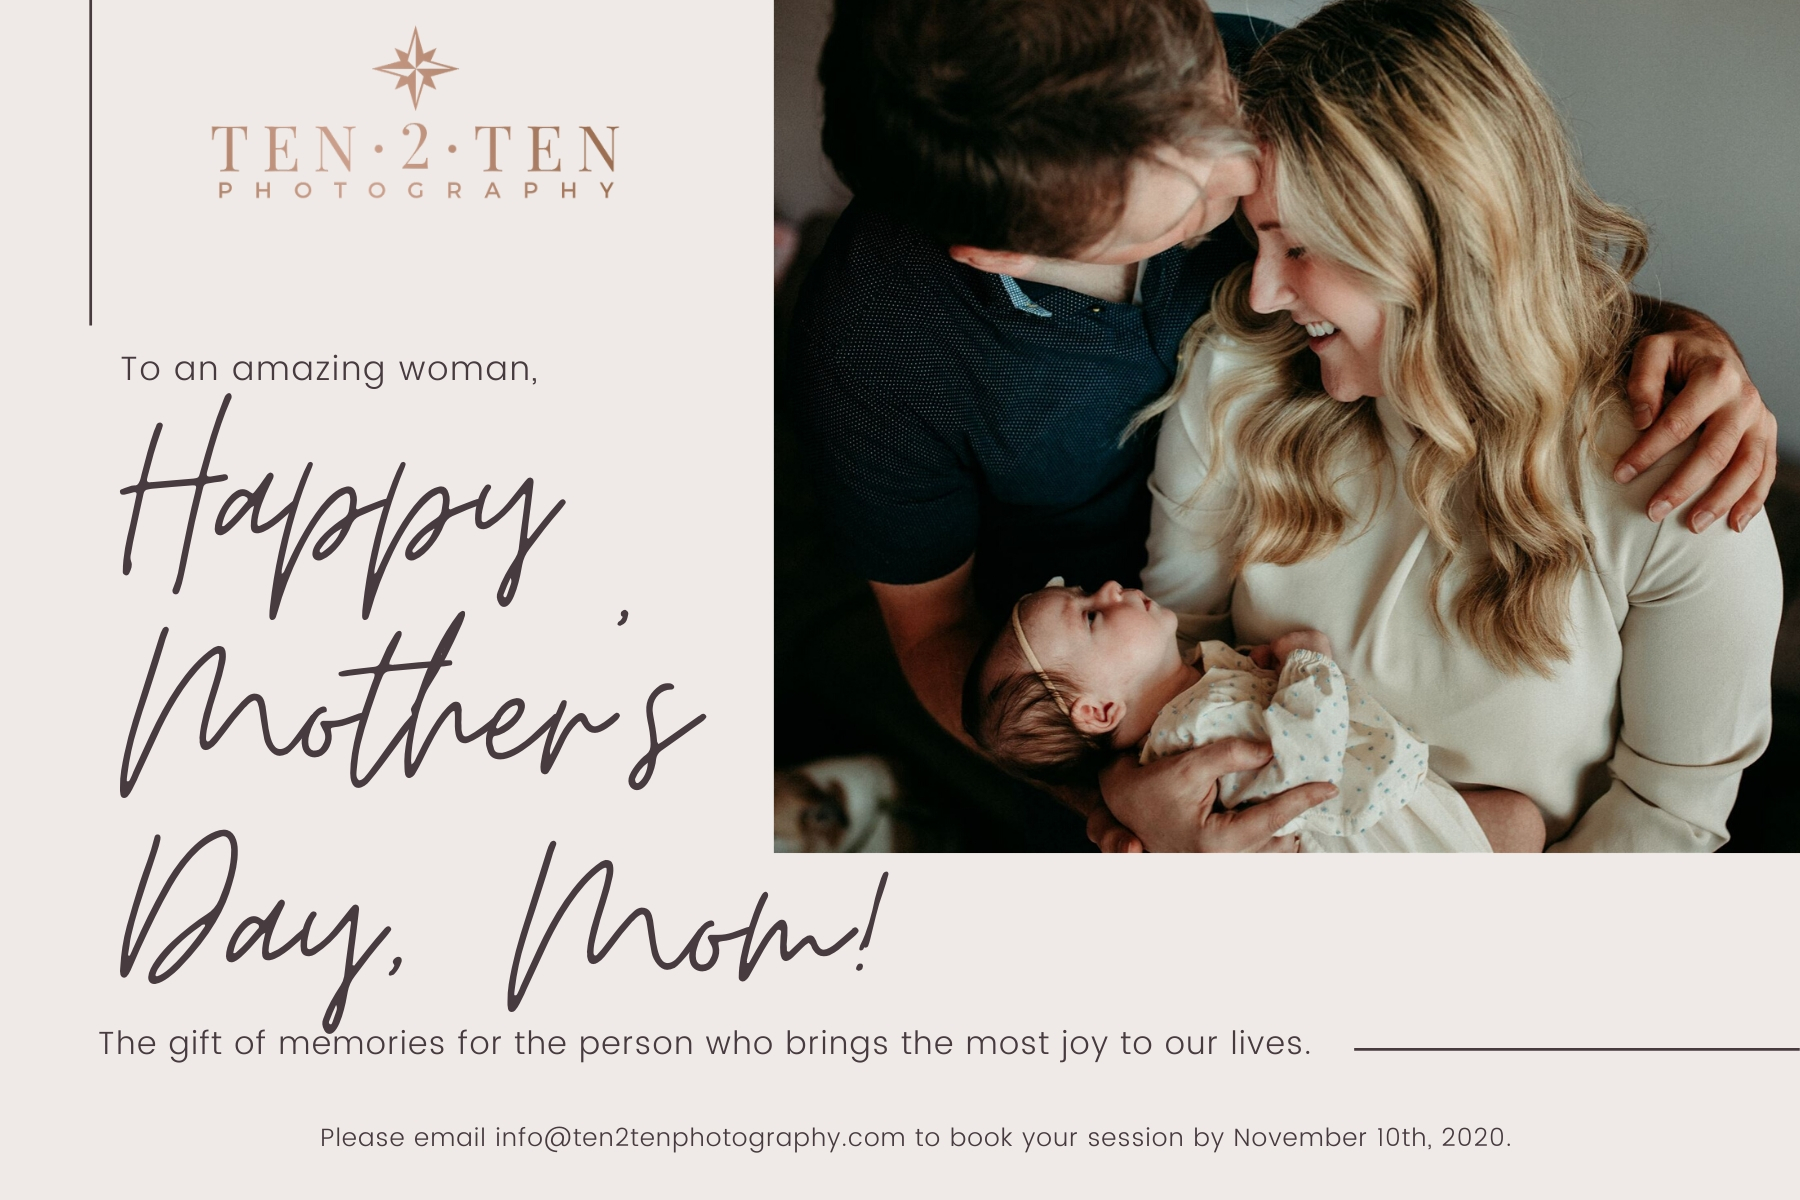 Copy of Photo Mothers Day Instagram Post - Toronto Family Photographer: Documenting your Story